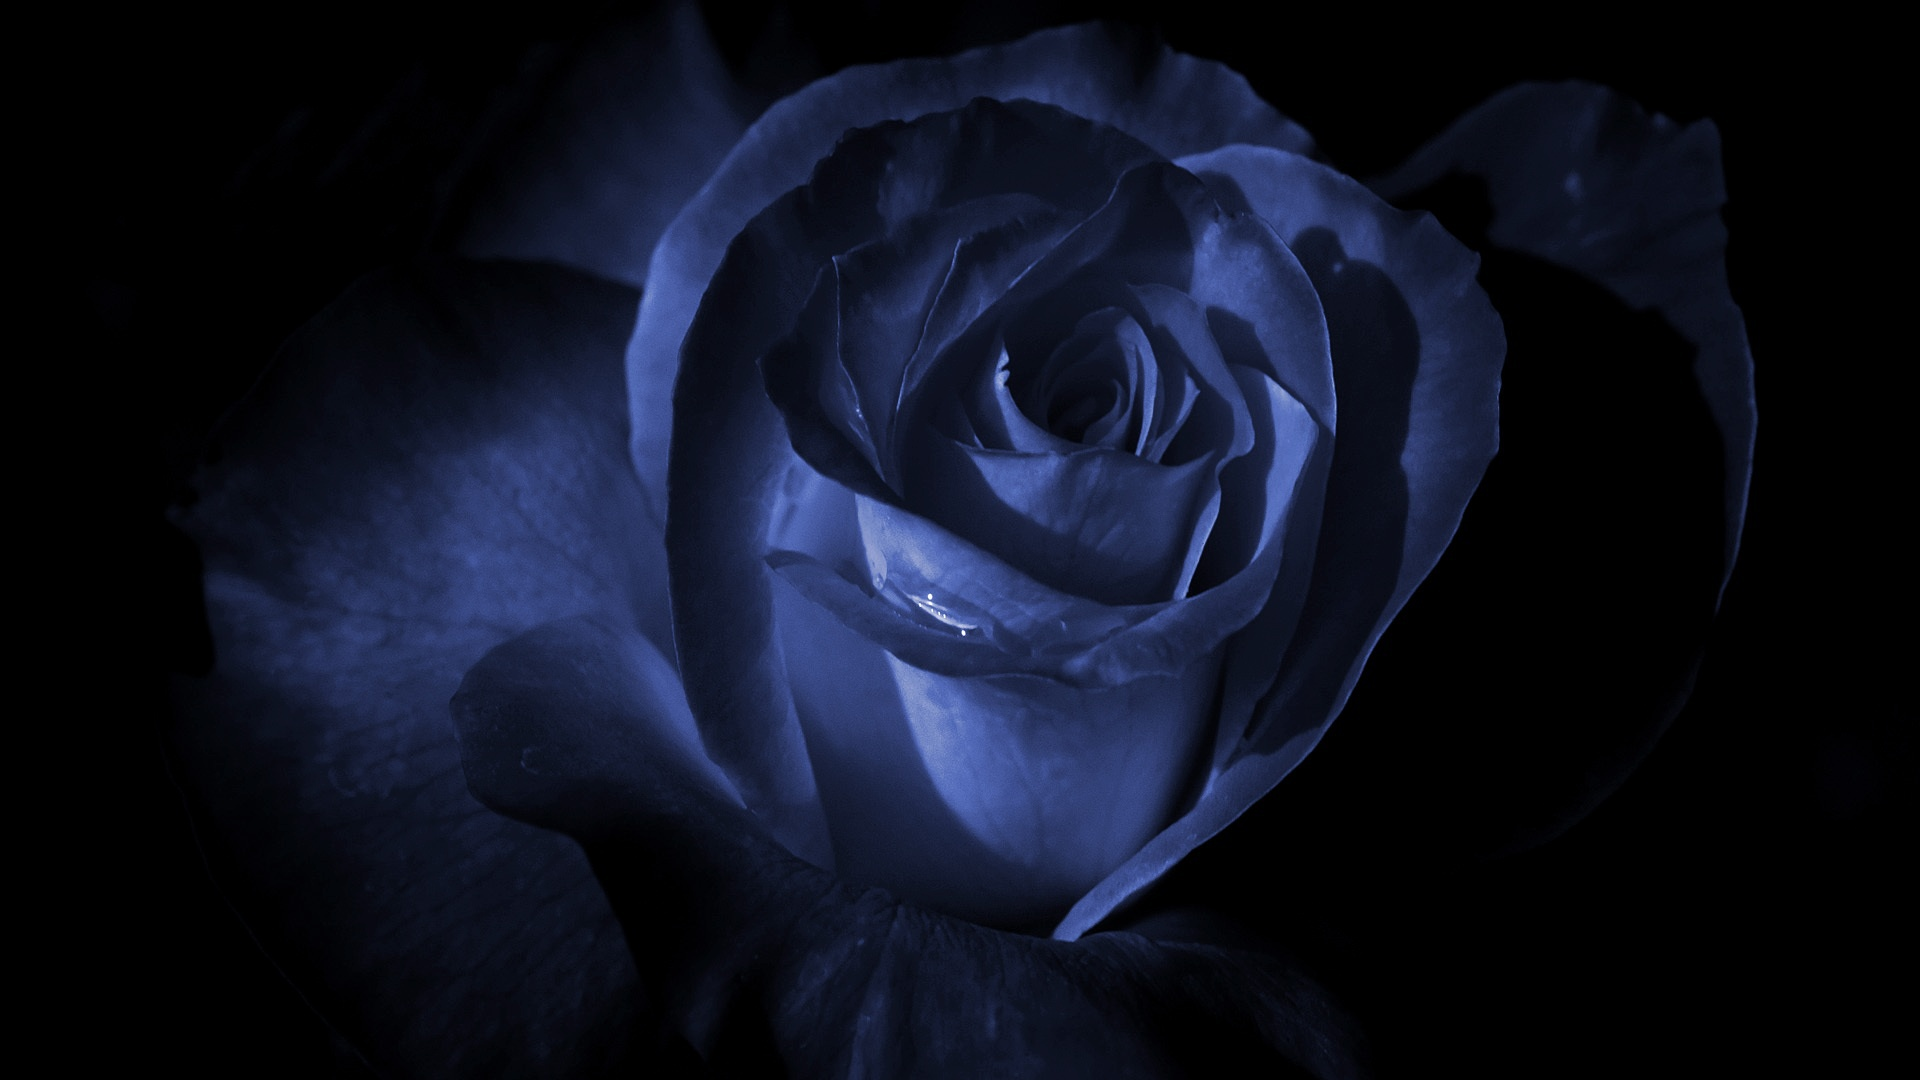 Dark Blue Rose Wallpaper